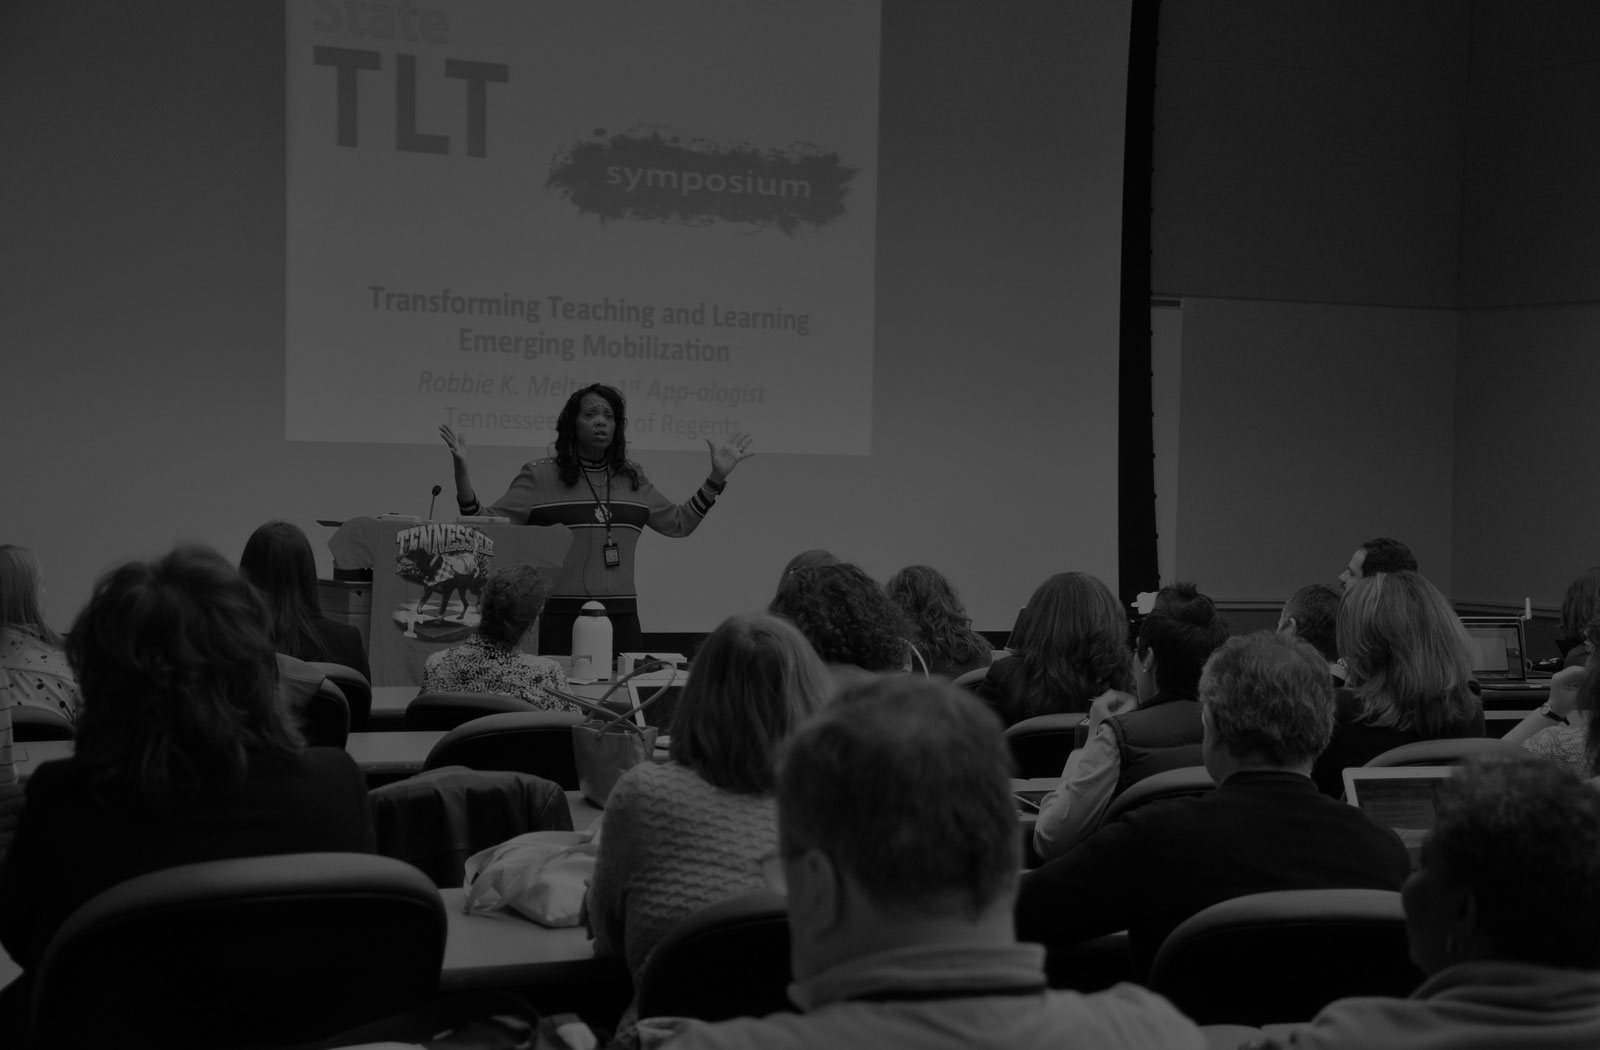 Save the date for the 2015 TLT Symposium